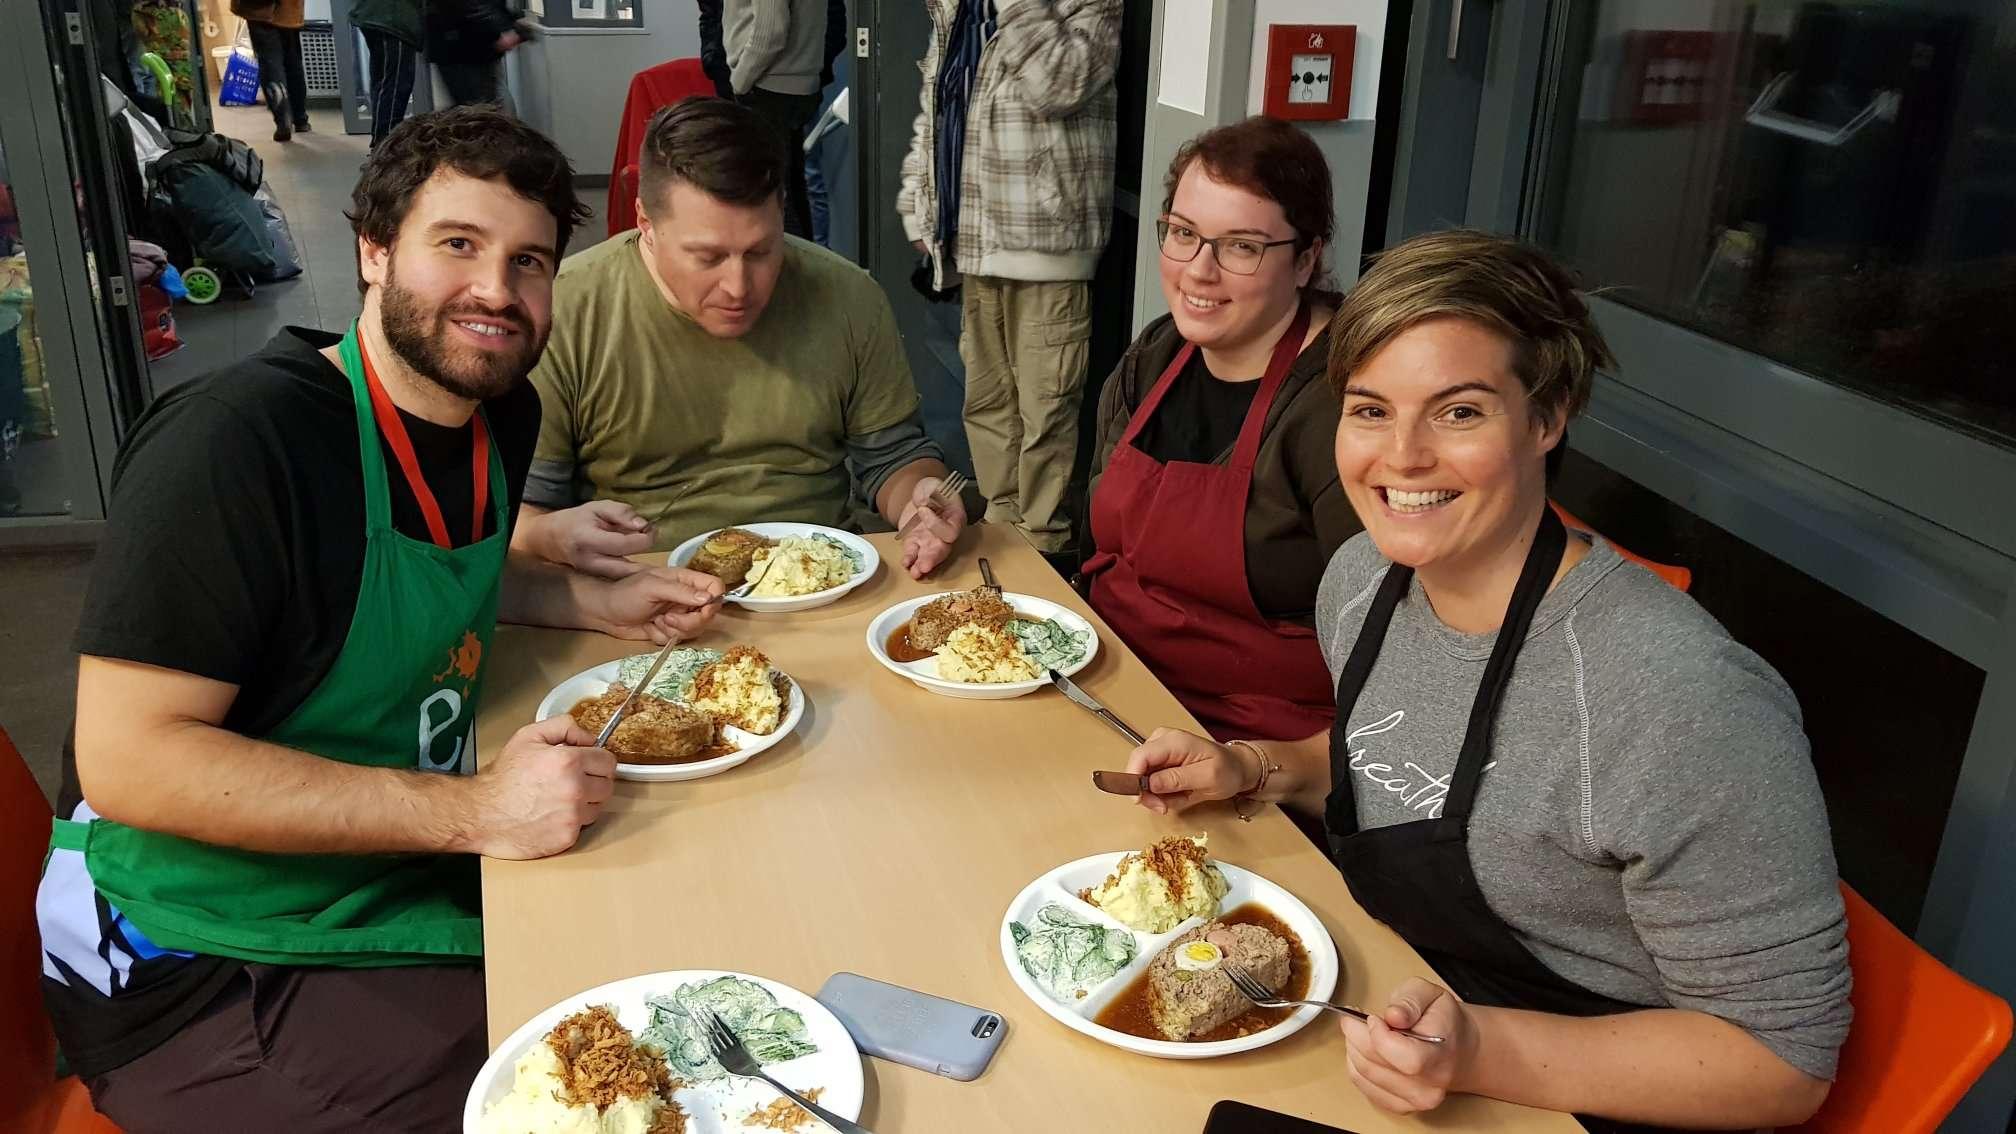 #panagenda4good: Cooking in a crypt